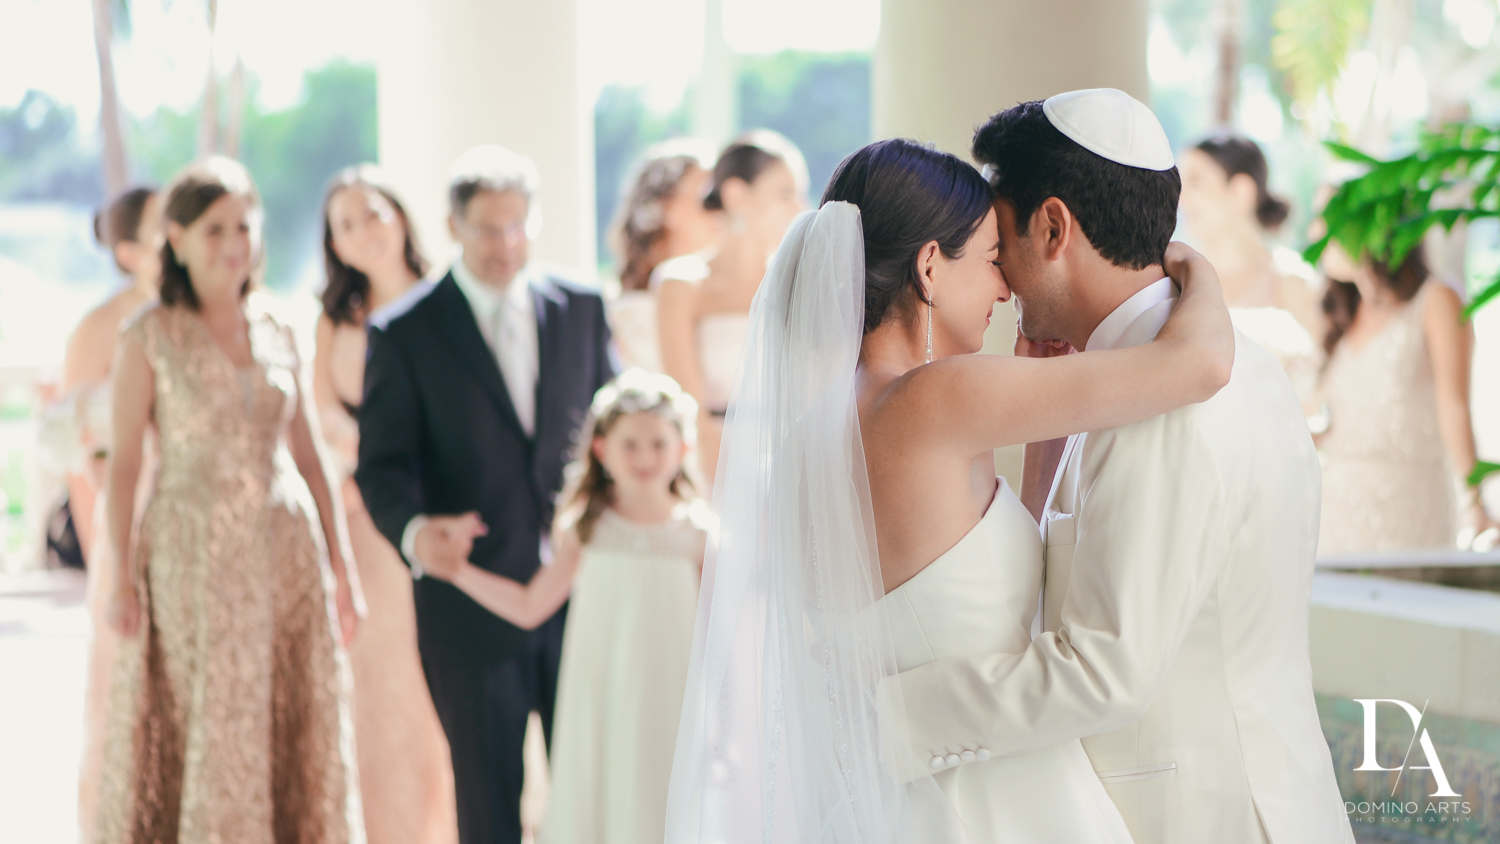 Modern Luxury Jewish Wedding Photography at Biltmore Miami Coral Gables